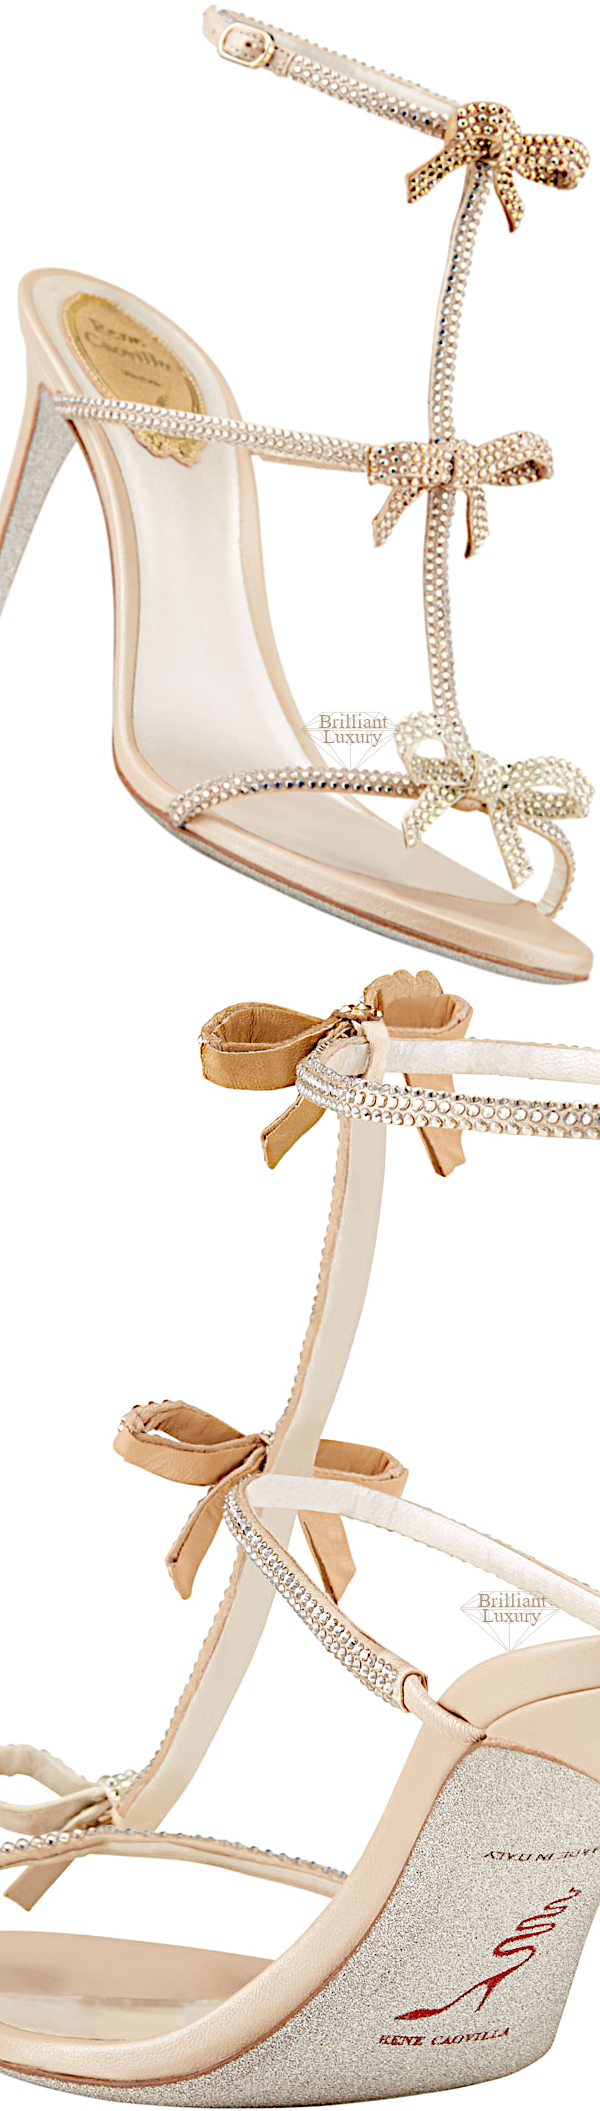 Shoe Collection Spring 2020 Rene Caovilla Studded Mid-Heel T-Strap Sandal with Bows